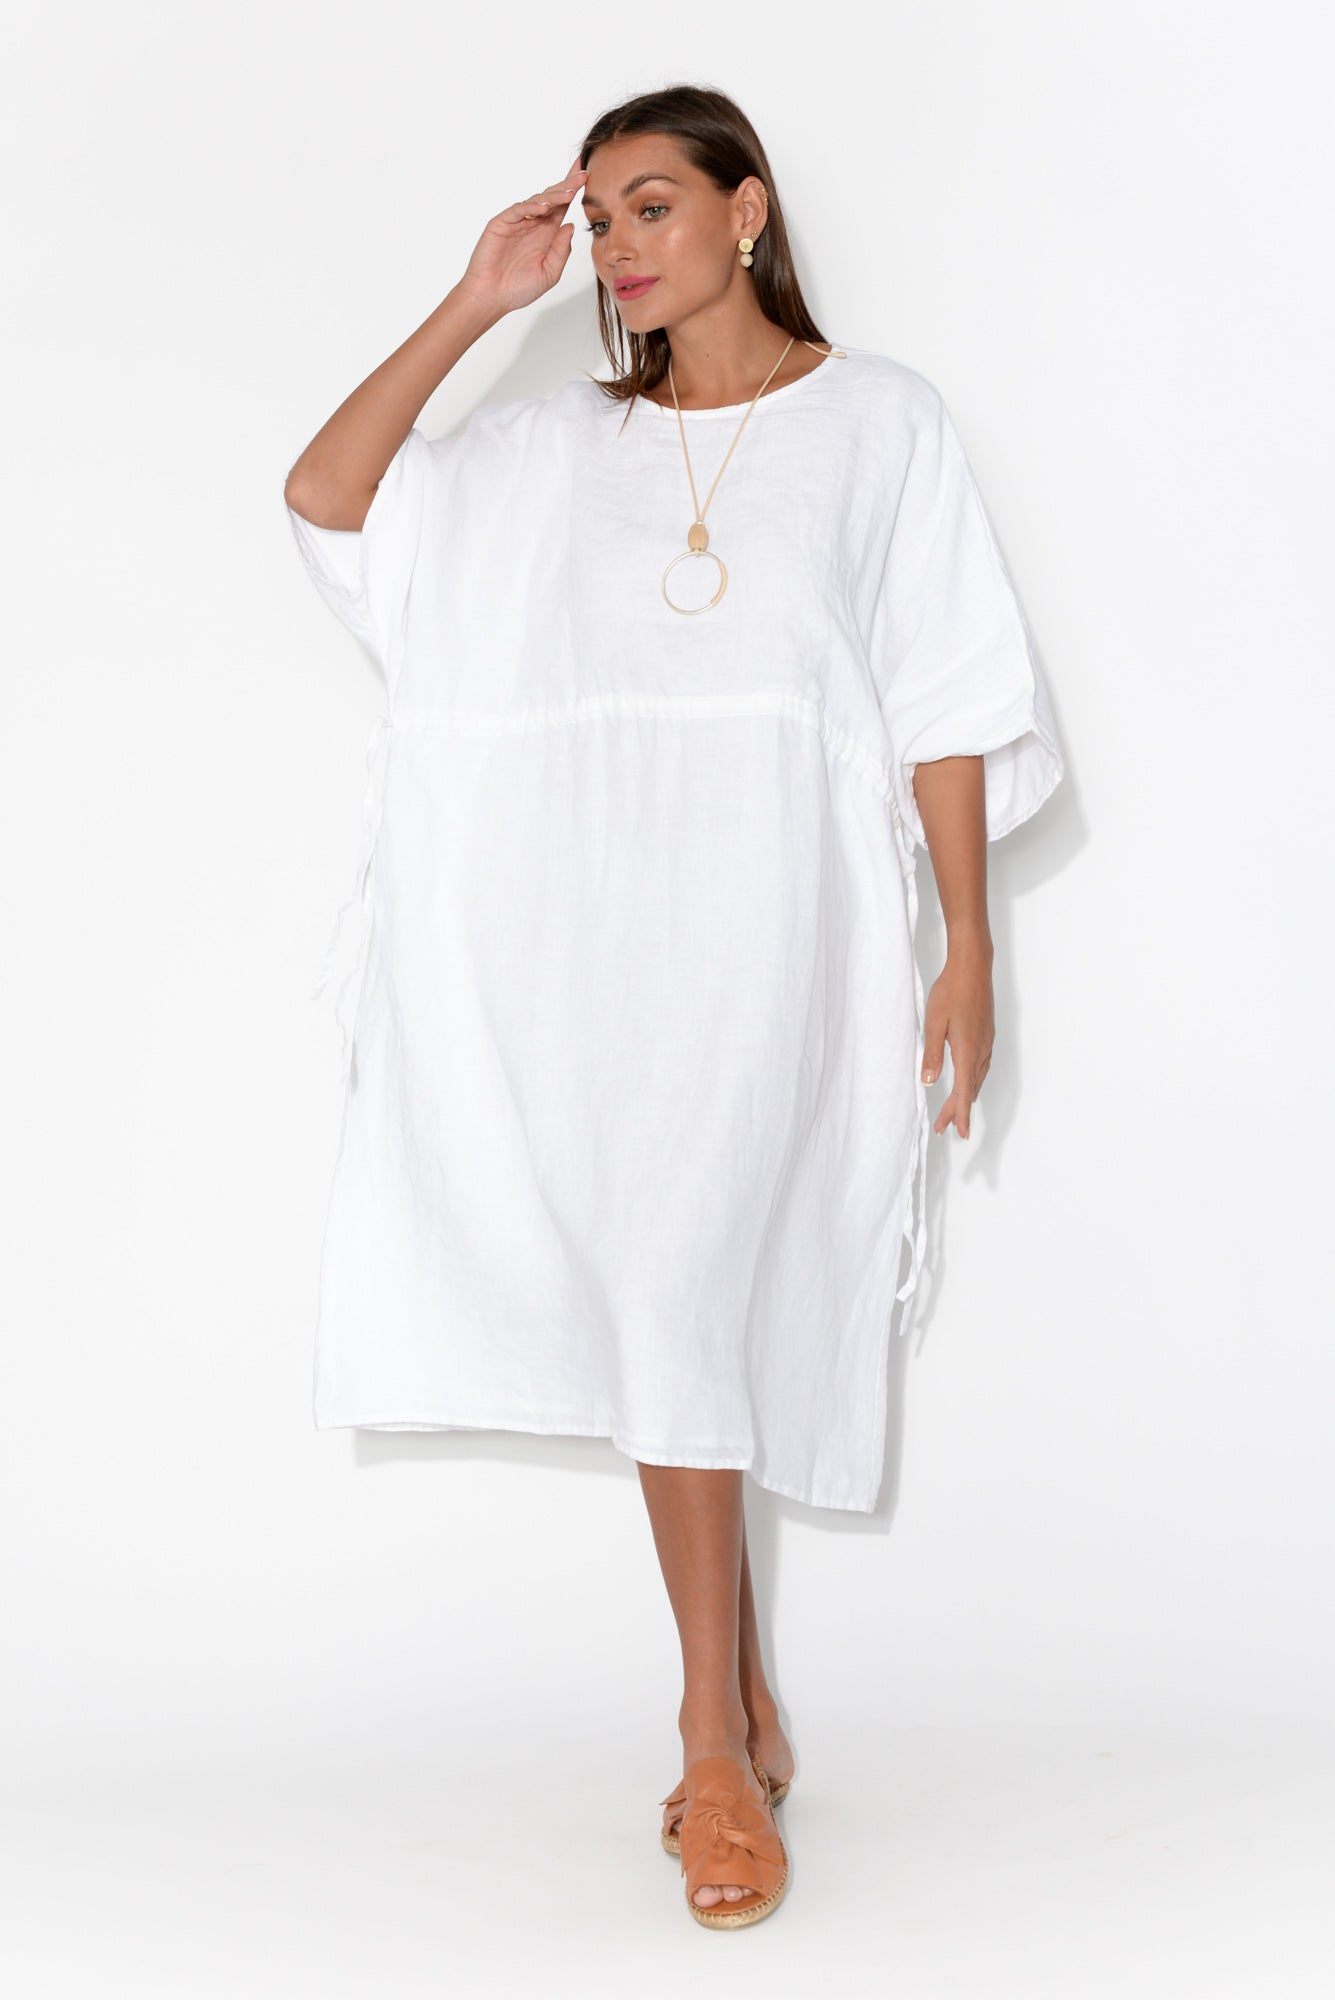 Remo White Linen Batwing Dress